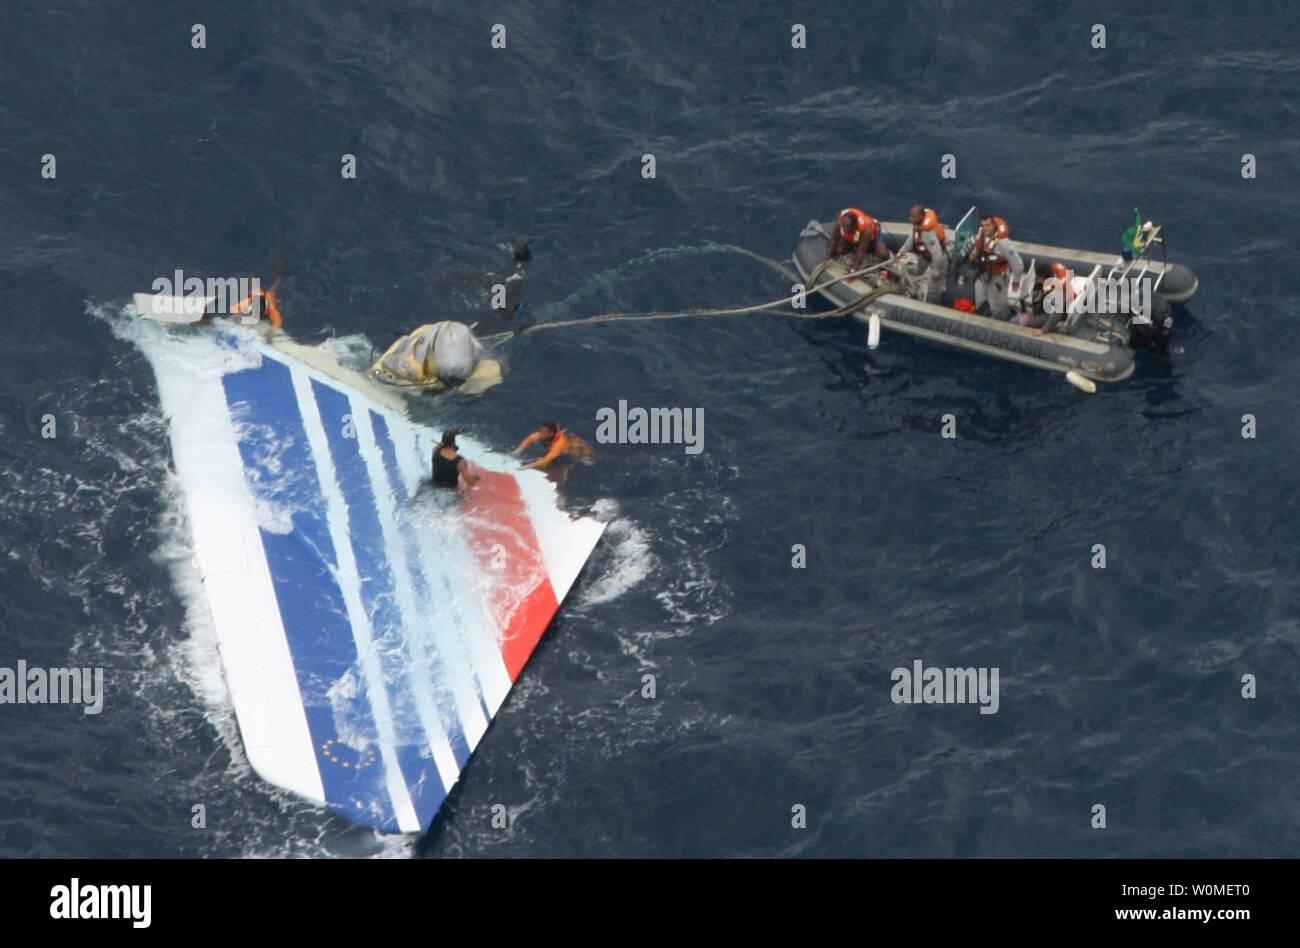 In this photo released by the Brazilian Air Force members of Brazil's Navy recover debris from the missing Air France jet in the Atlantic Ocean, June 8, 2009. The U.S. Navy is sending a team equipped with underwater listening devices to assist in the search for the missing black box. (UPI Photo/Brazilian Air Force ) - Stock Image